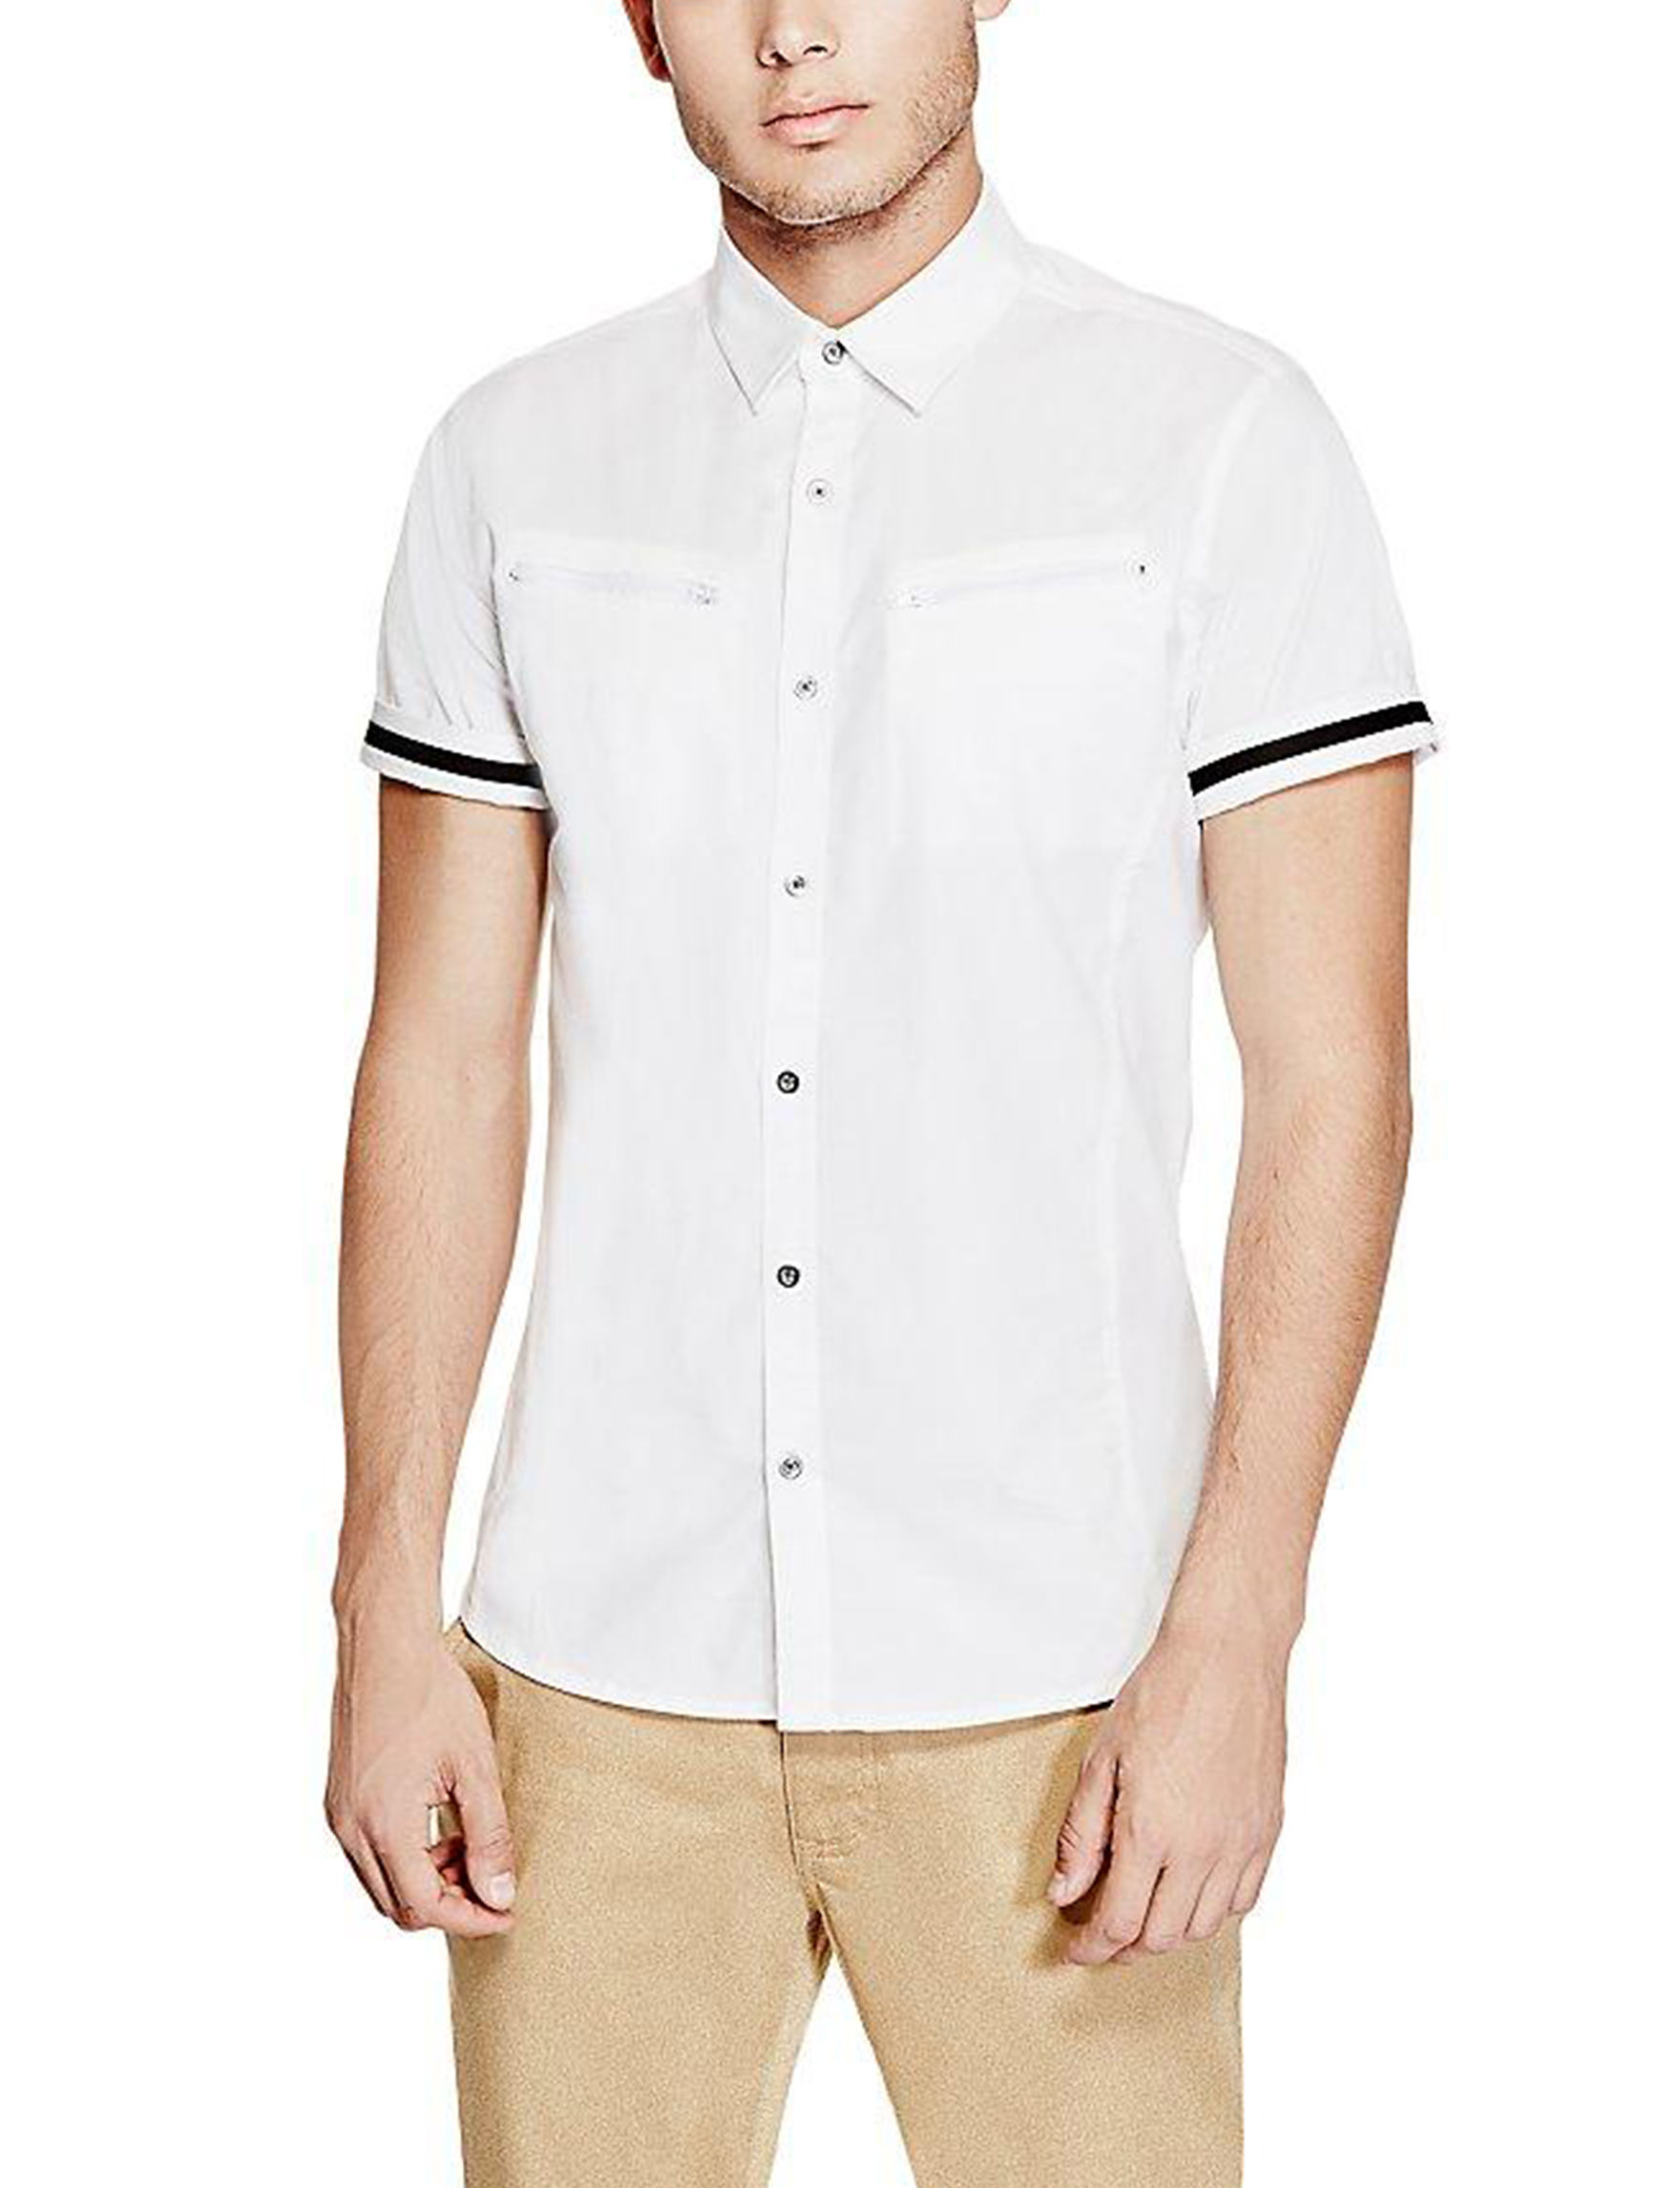 G by Guess White Casual Button Down Shirts